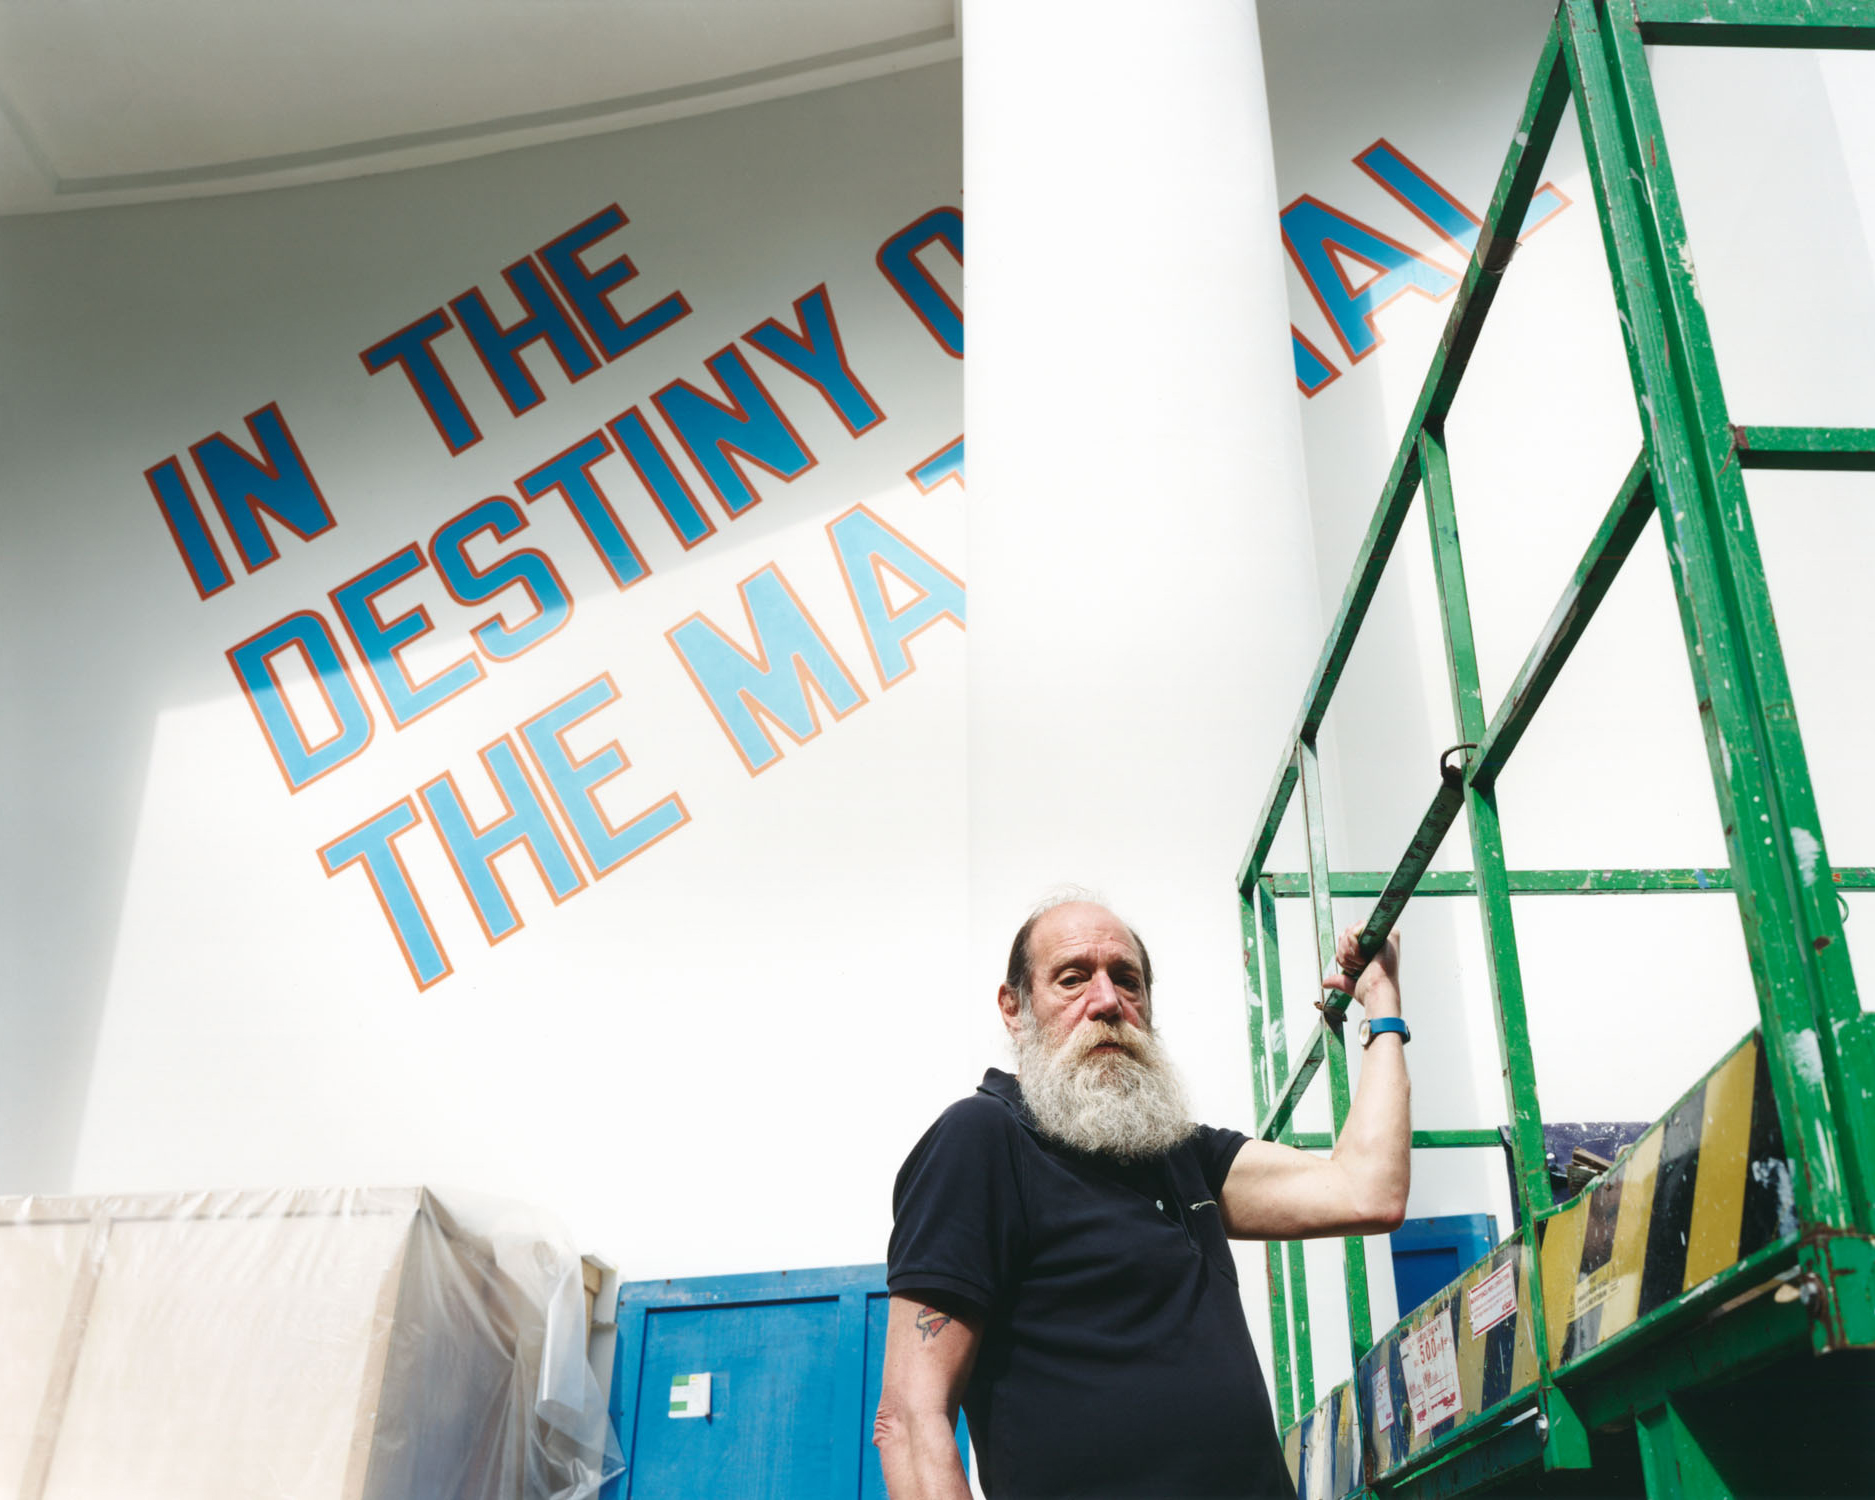 Lawrence Weiner, 2007 Venice, Italy